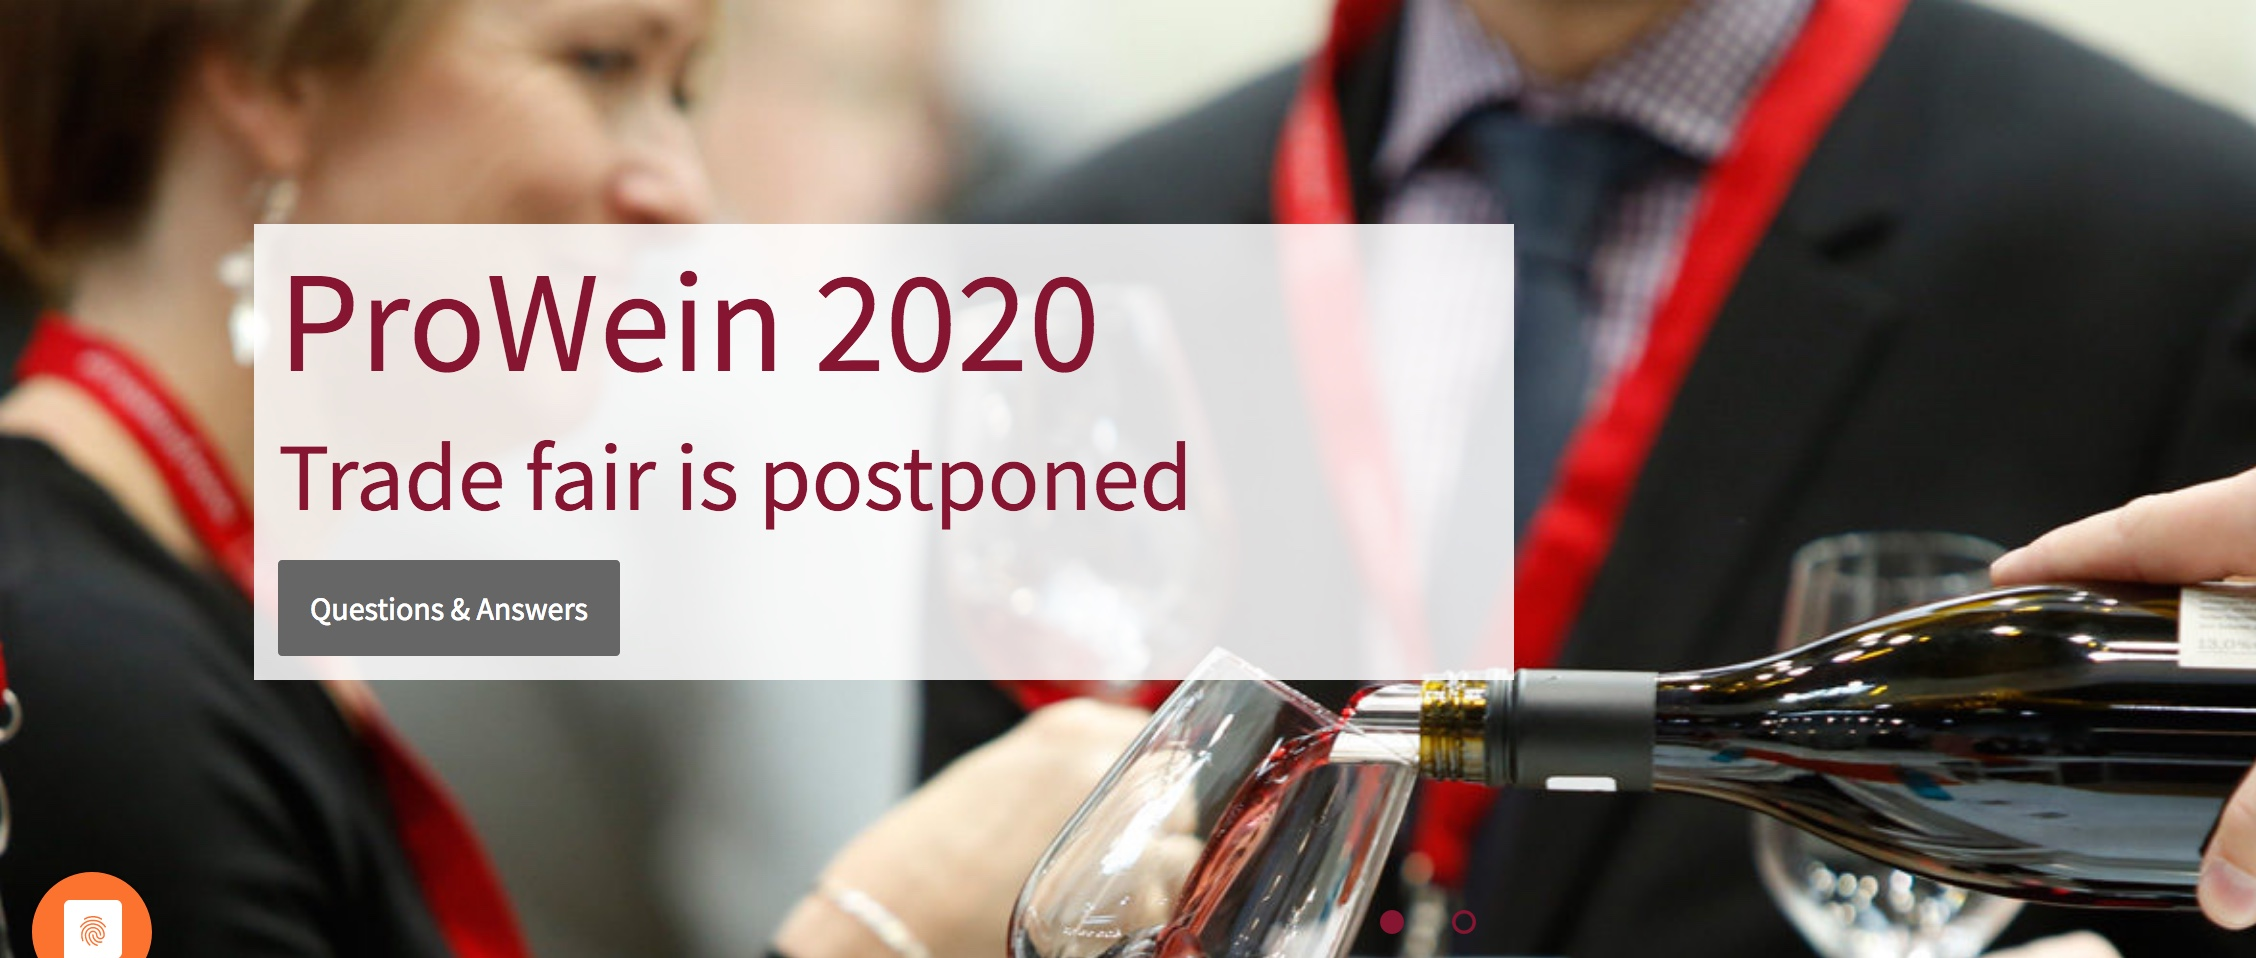 Prowein cancelled